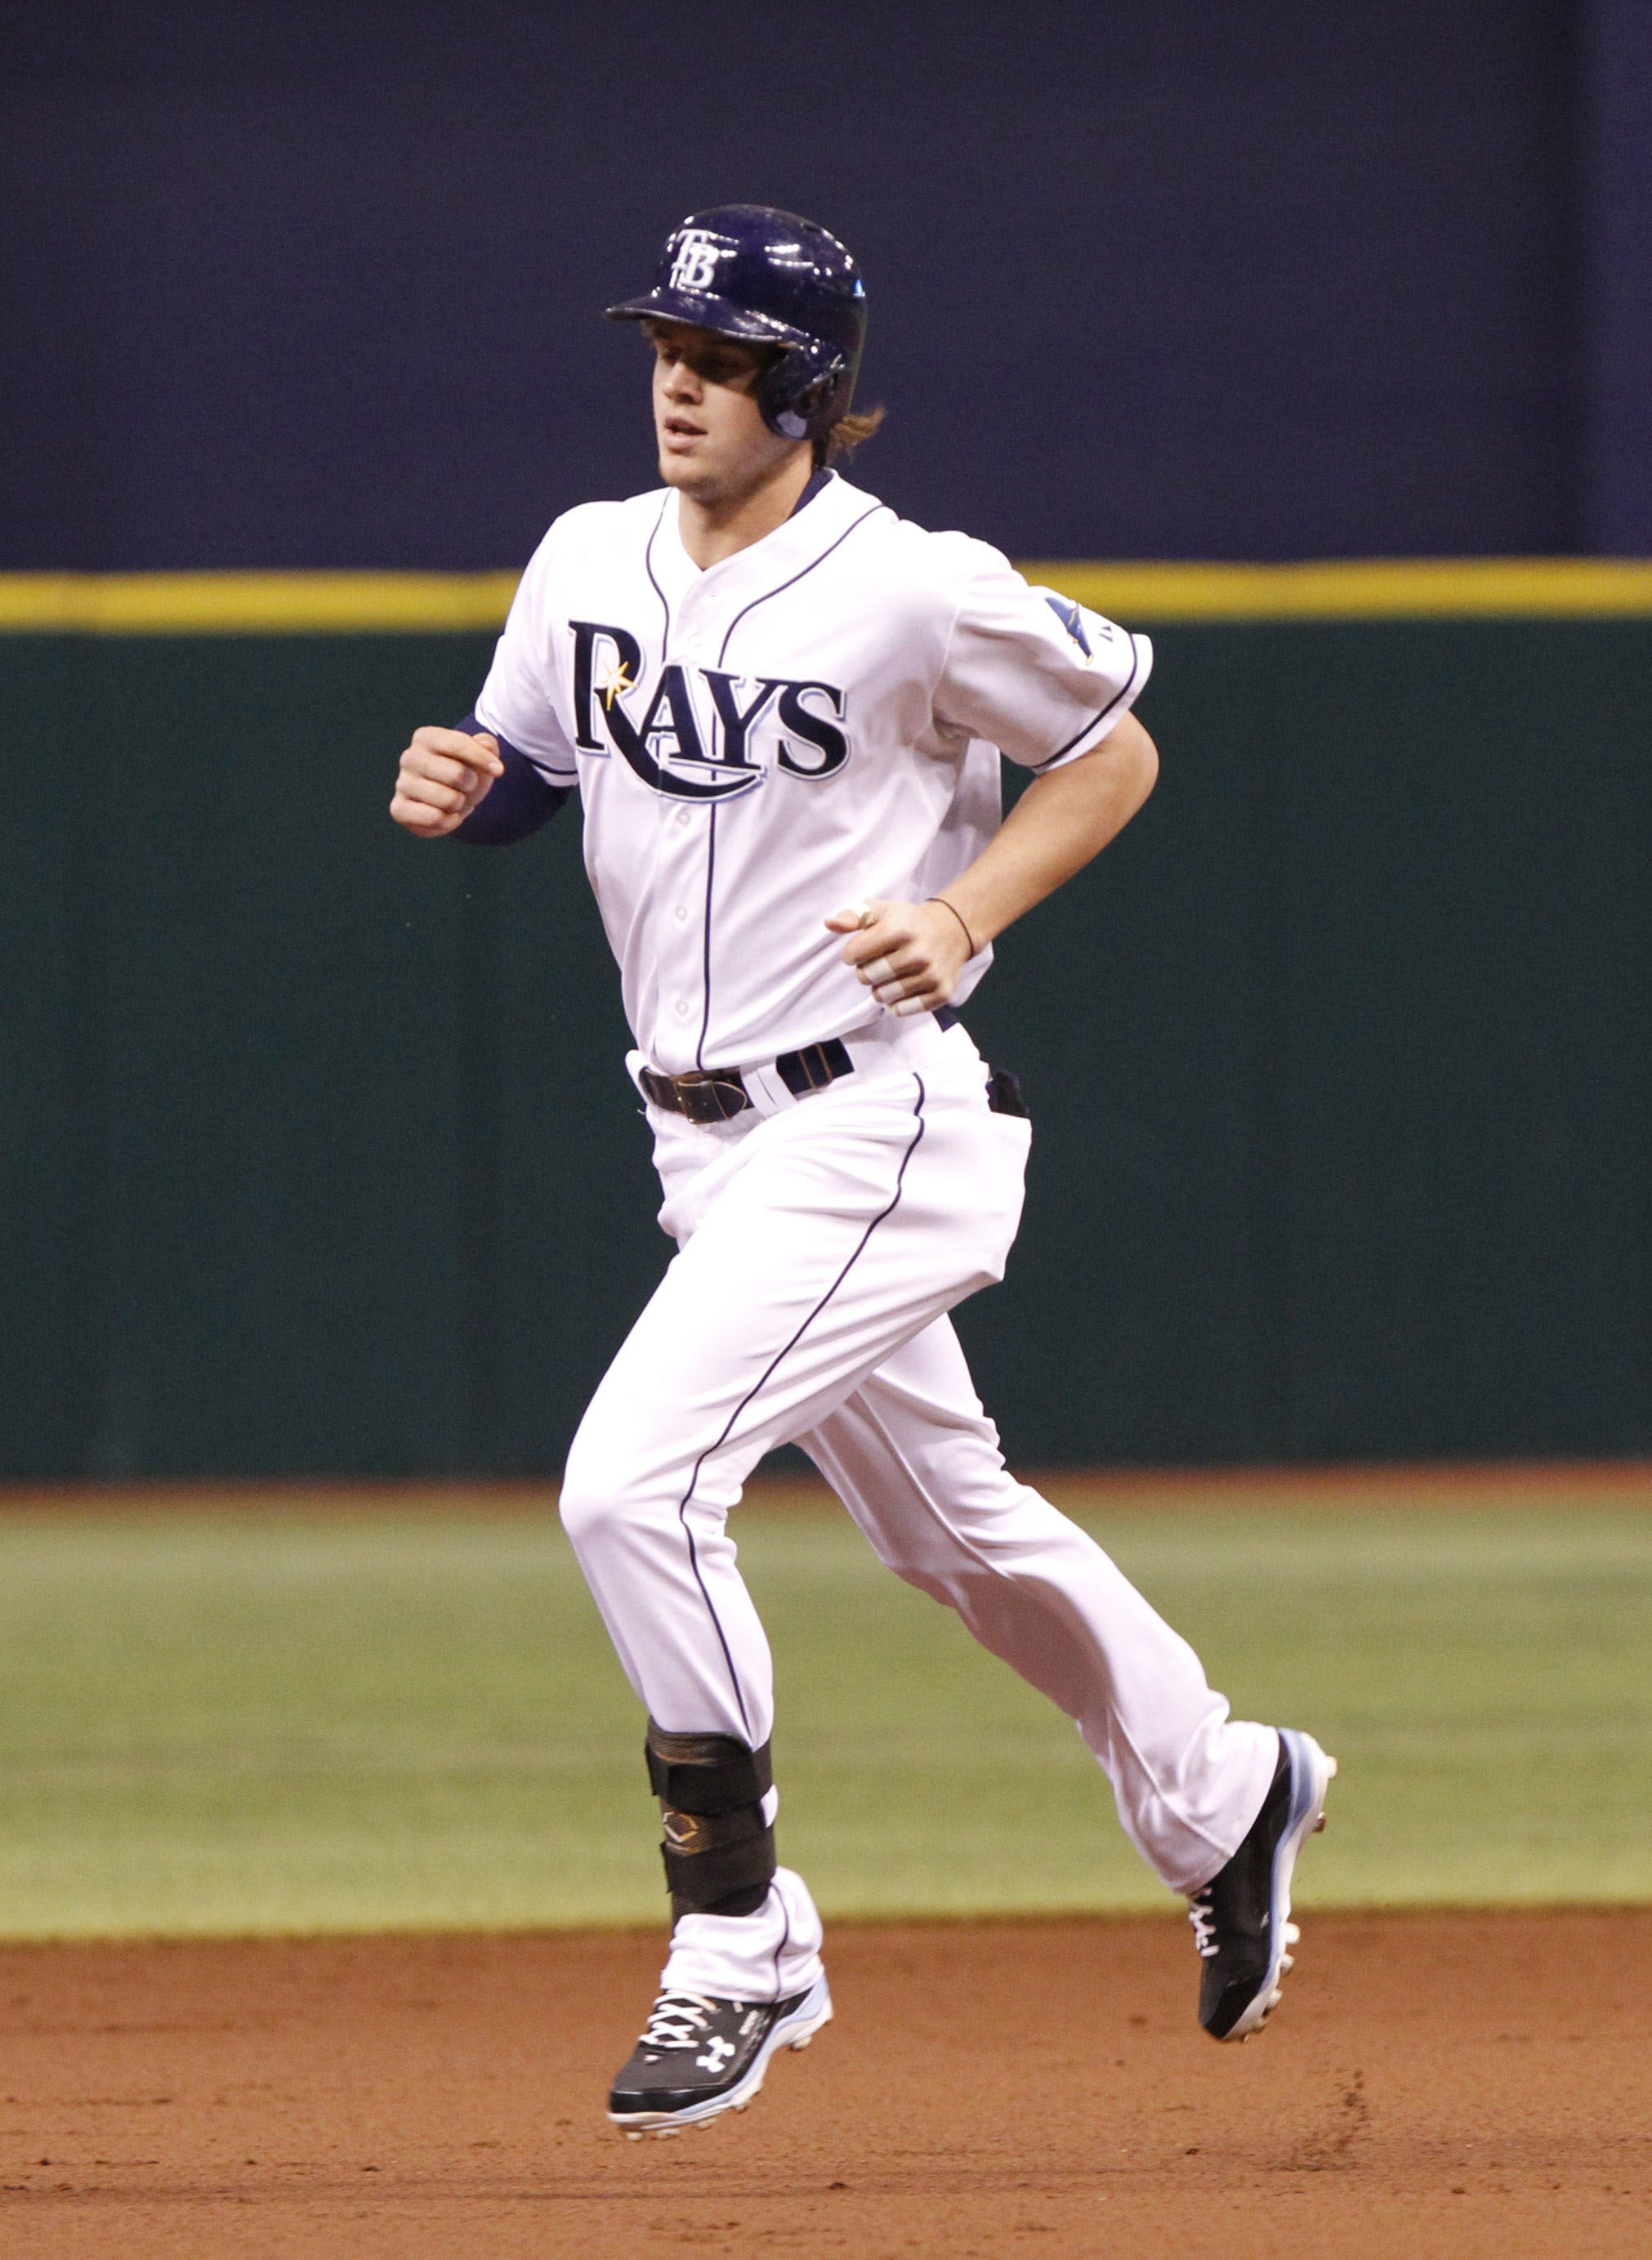 Crowdcam hot shot tampa bay rays right fielder wil myers